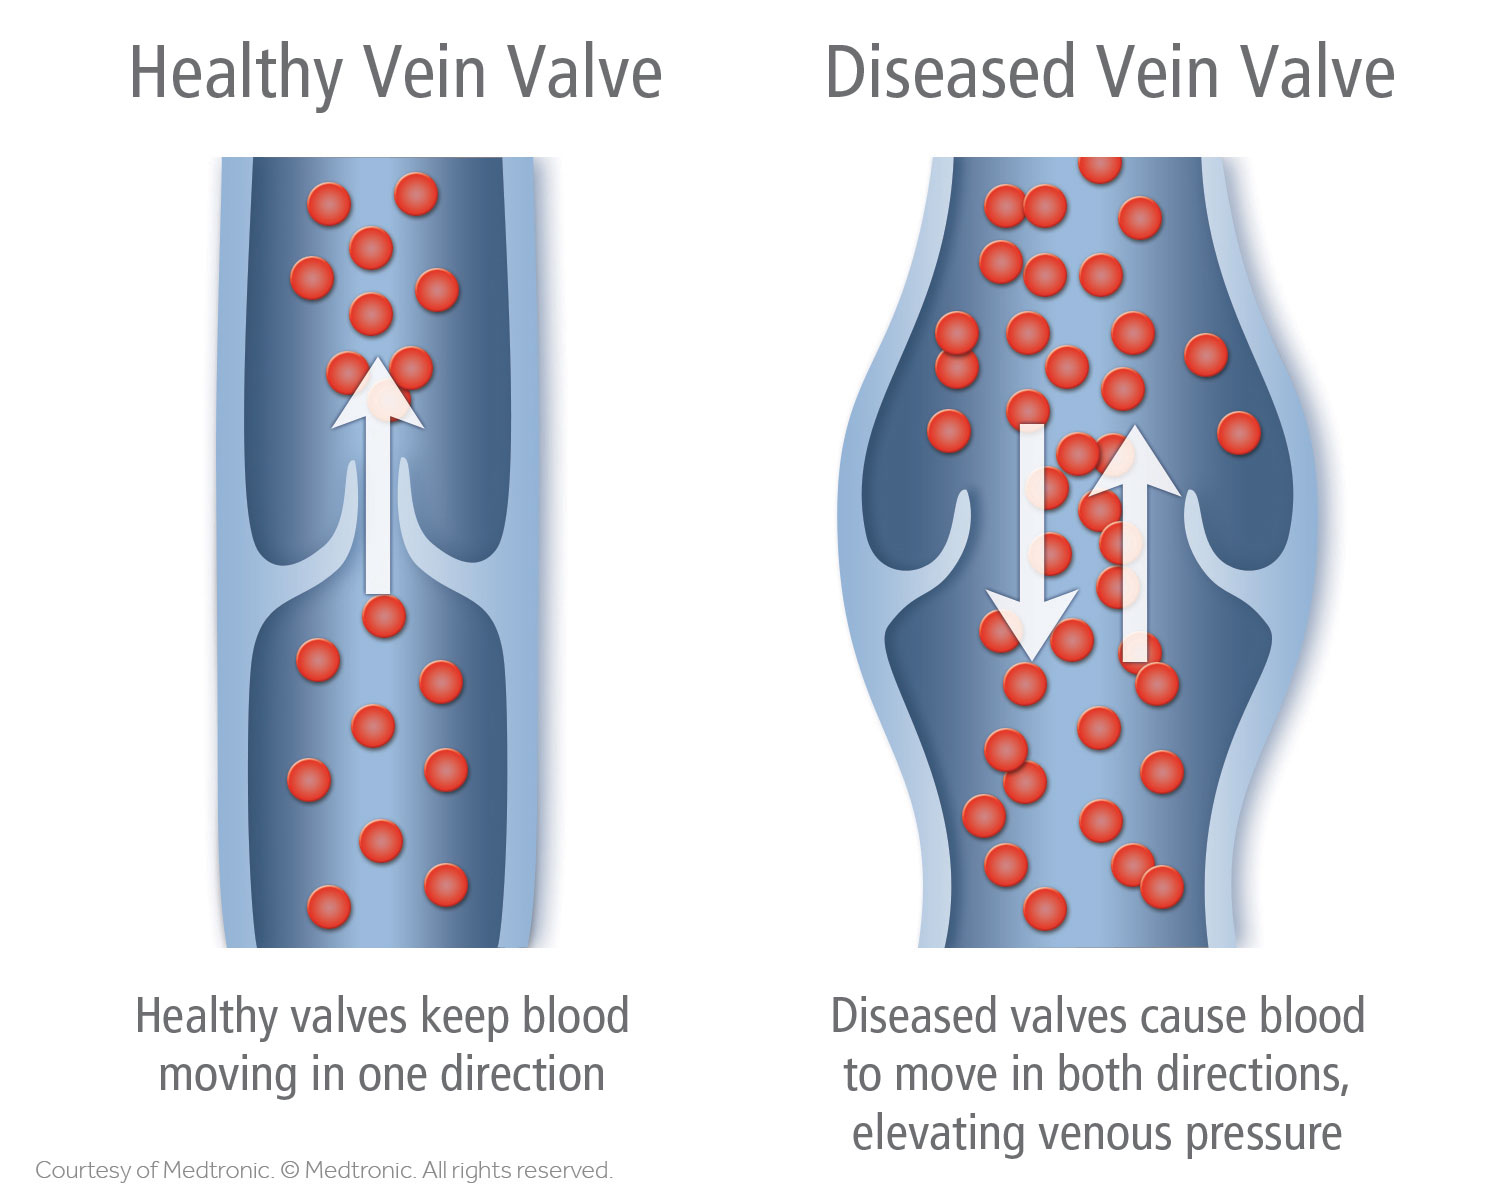 Healthy Vein Valve vs Diseased Vein Valve